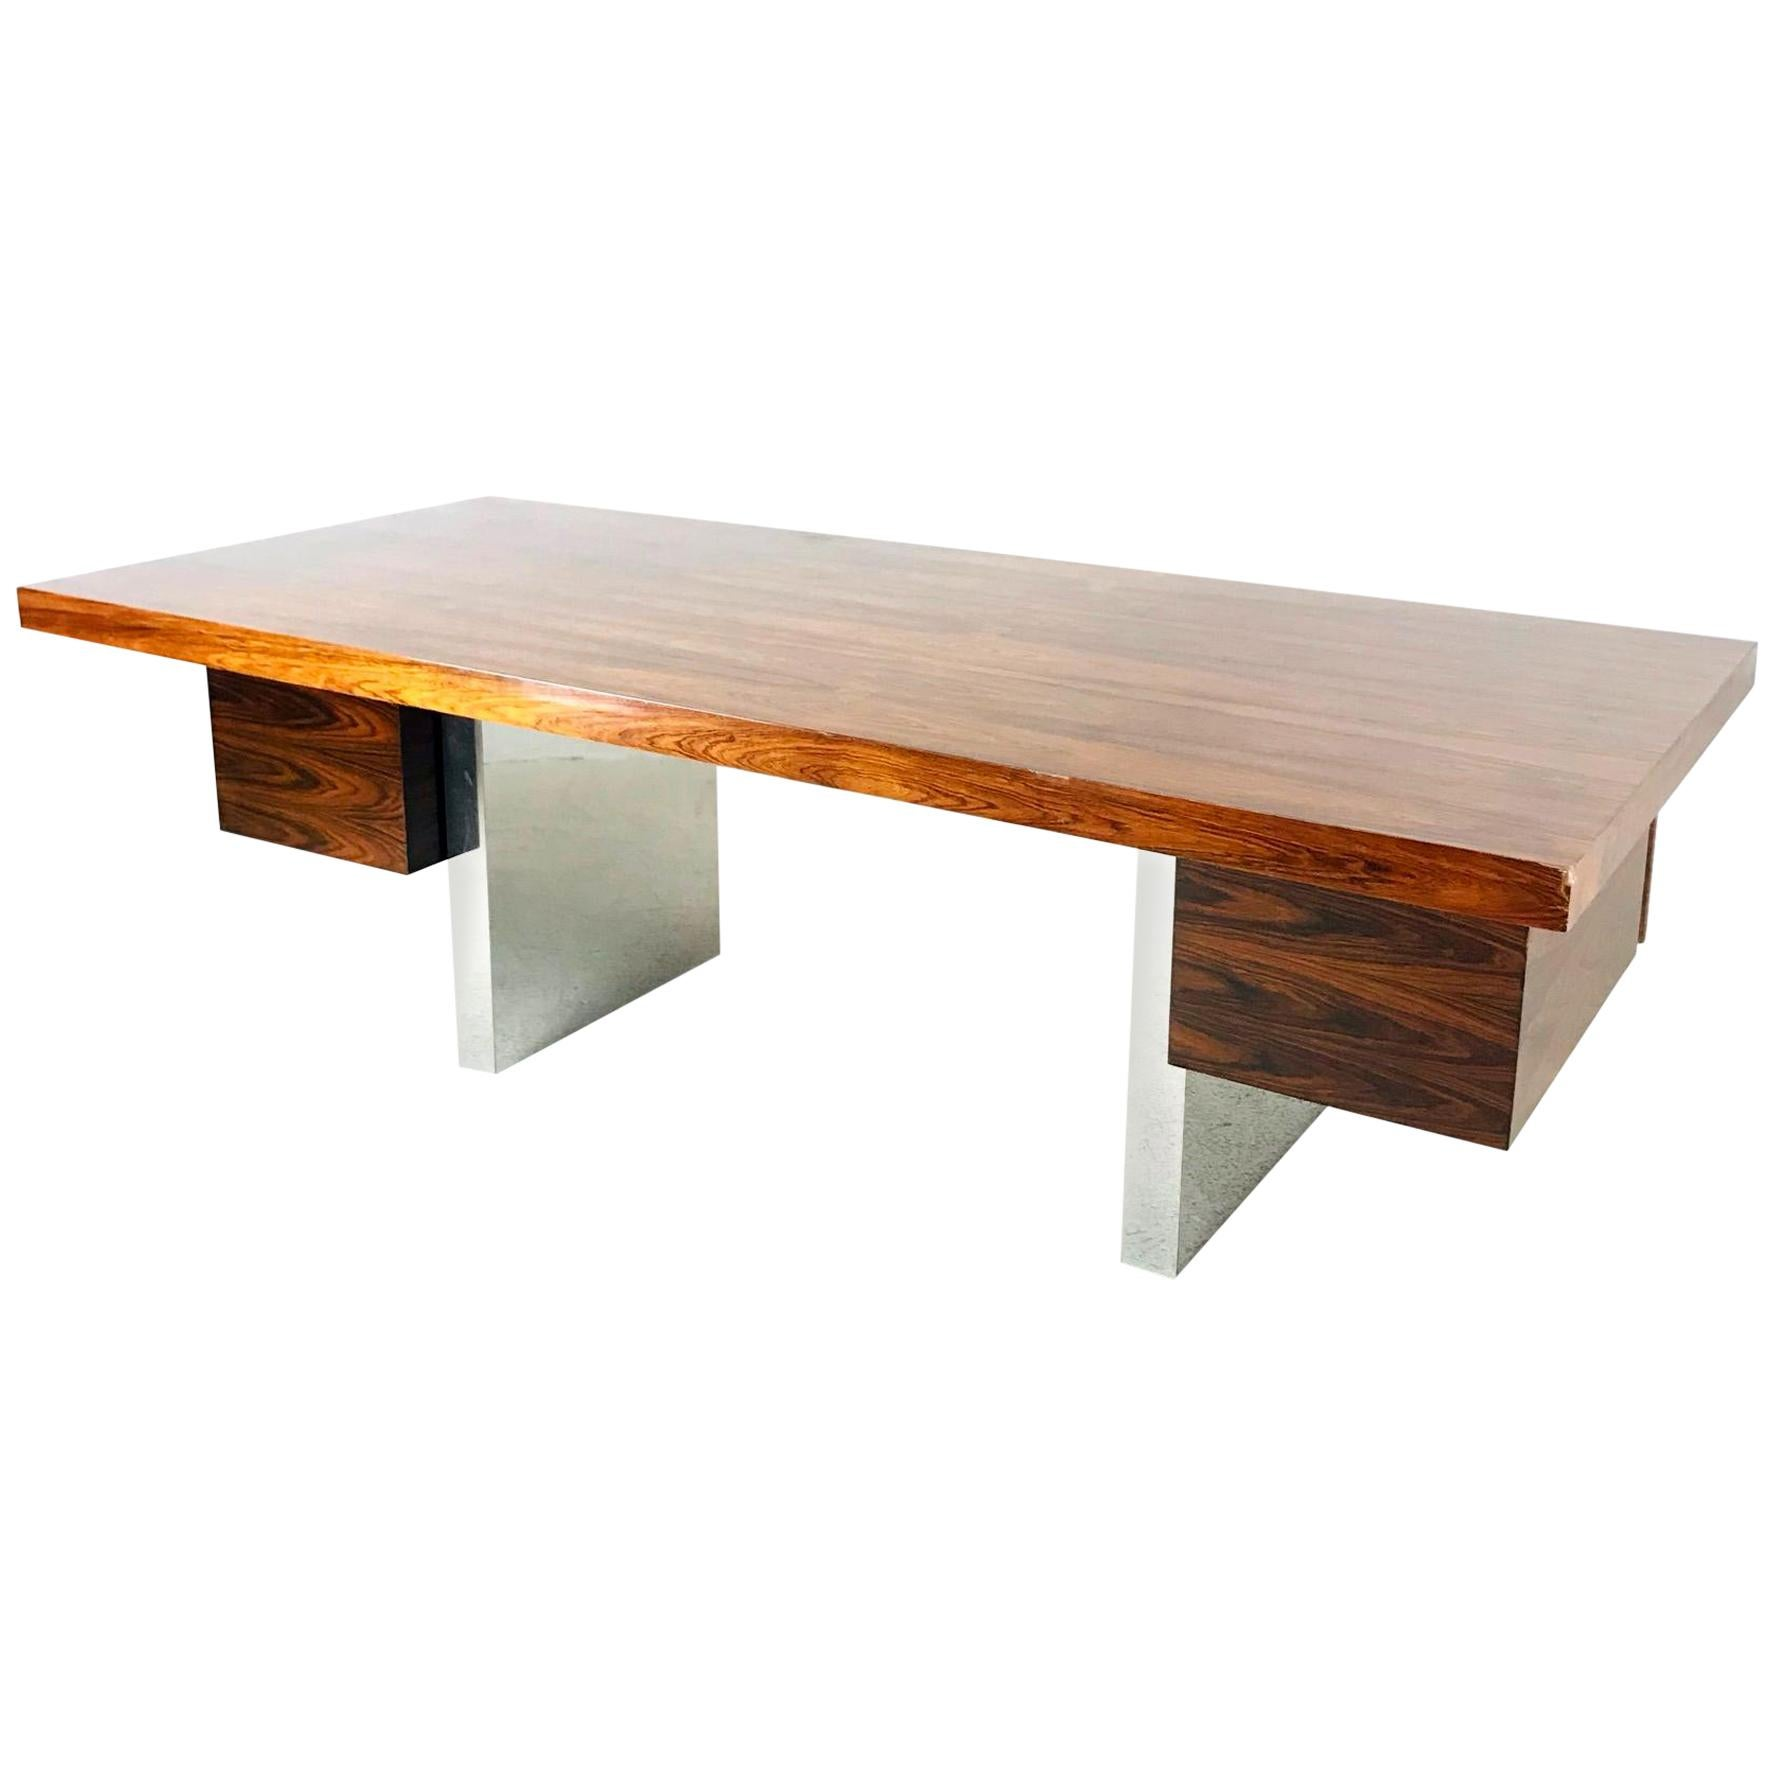 Dunbar Rosewood and Chrome Executive Desk by Roger Sprunger